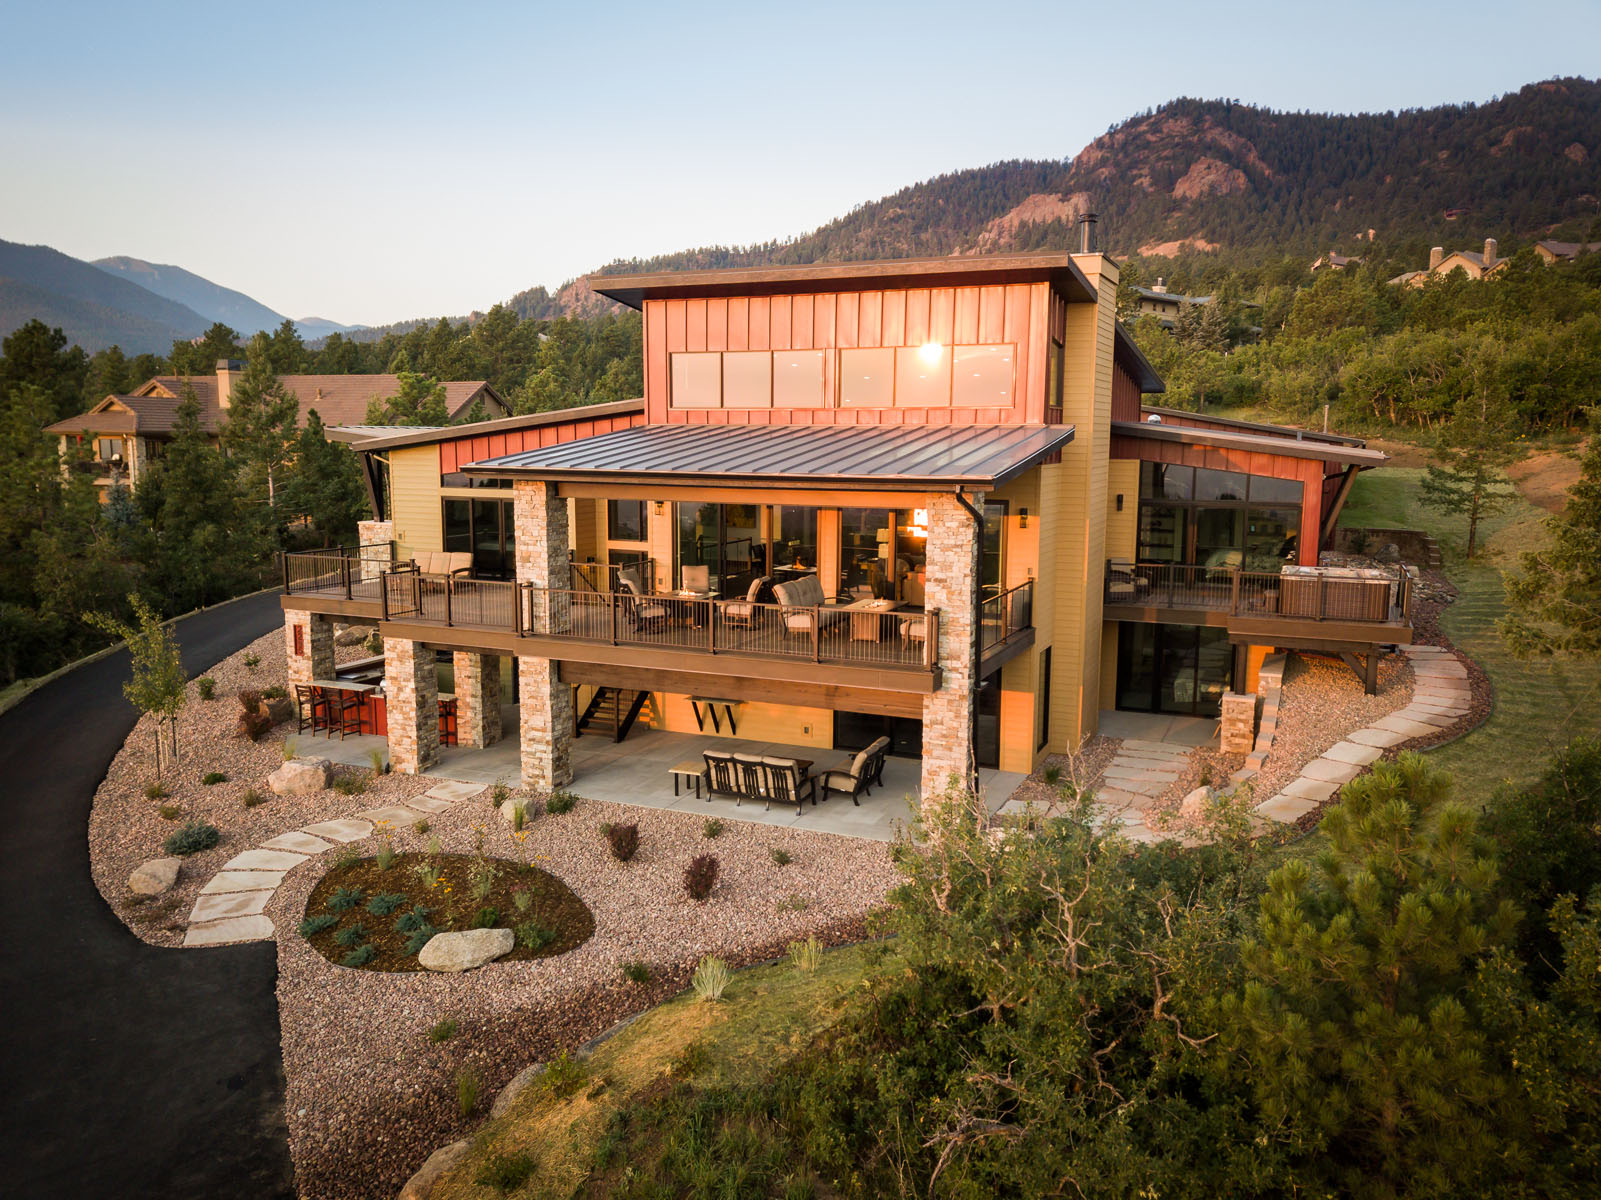 Luxury home in Colorado Springs by architectural photographer Steinberger photographed for the home builder